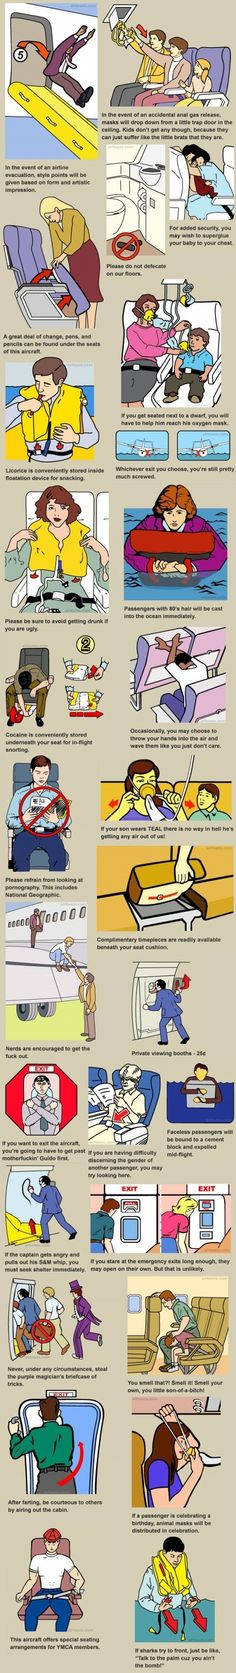 This is awesome!! Airline safety instructions explained